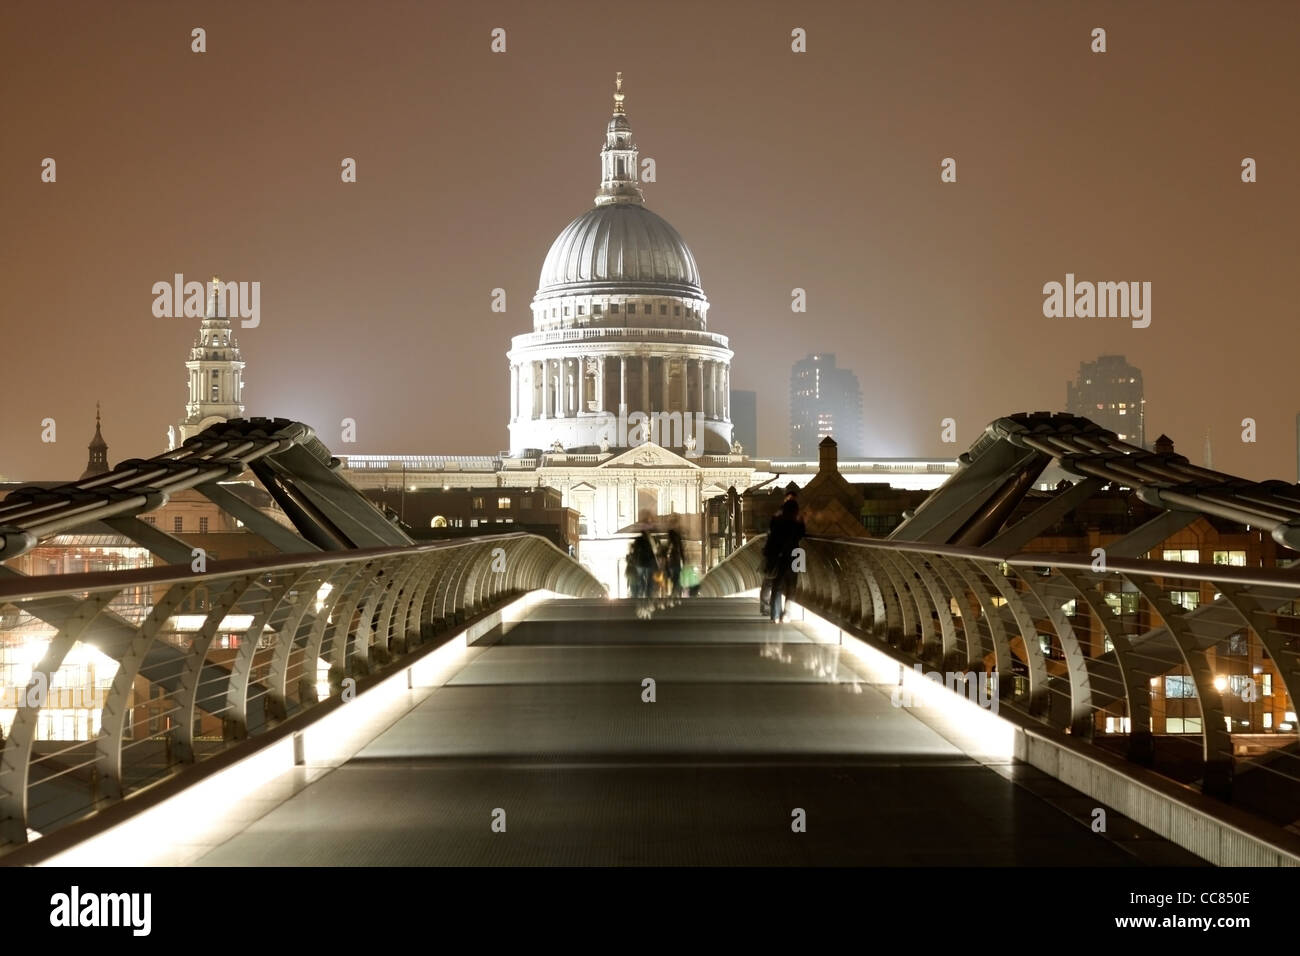 St. Paul's Cathedral in London Stock Photo